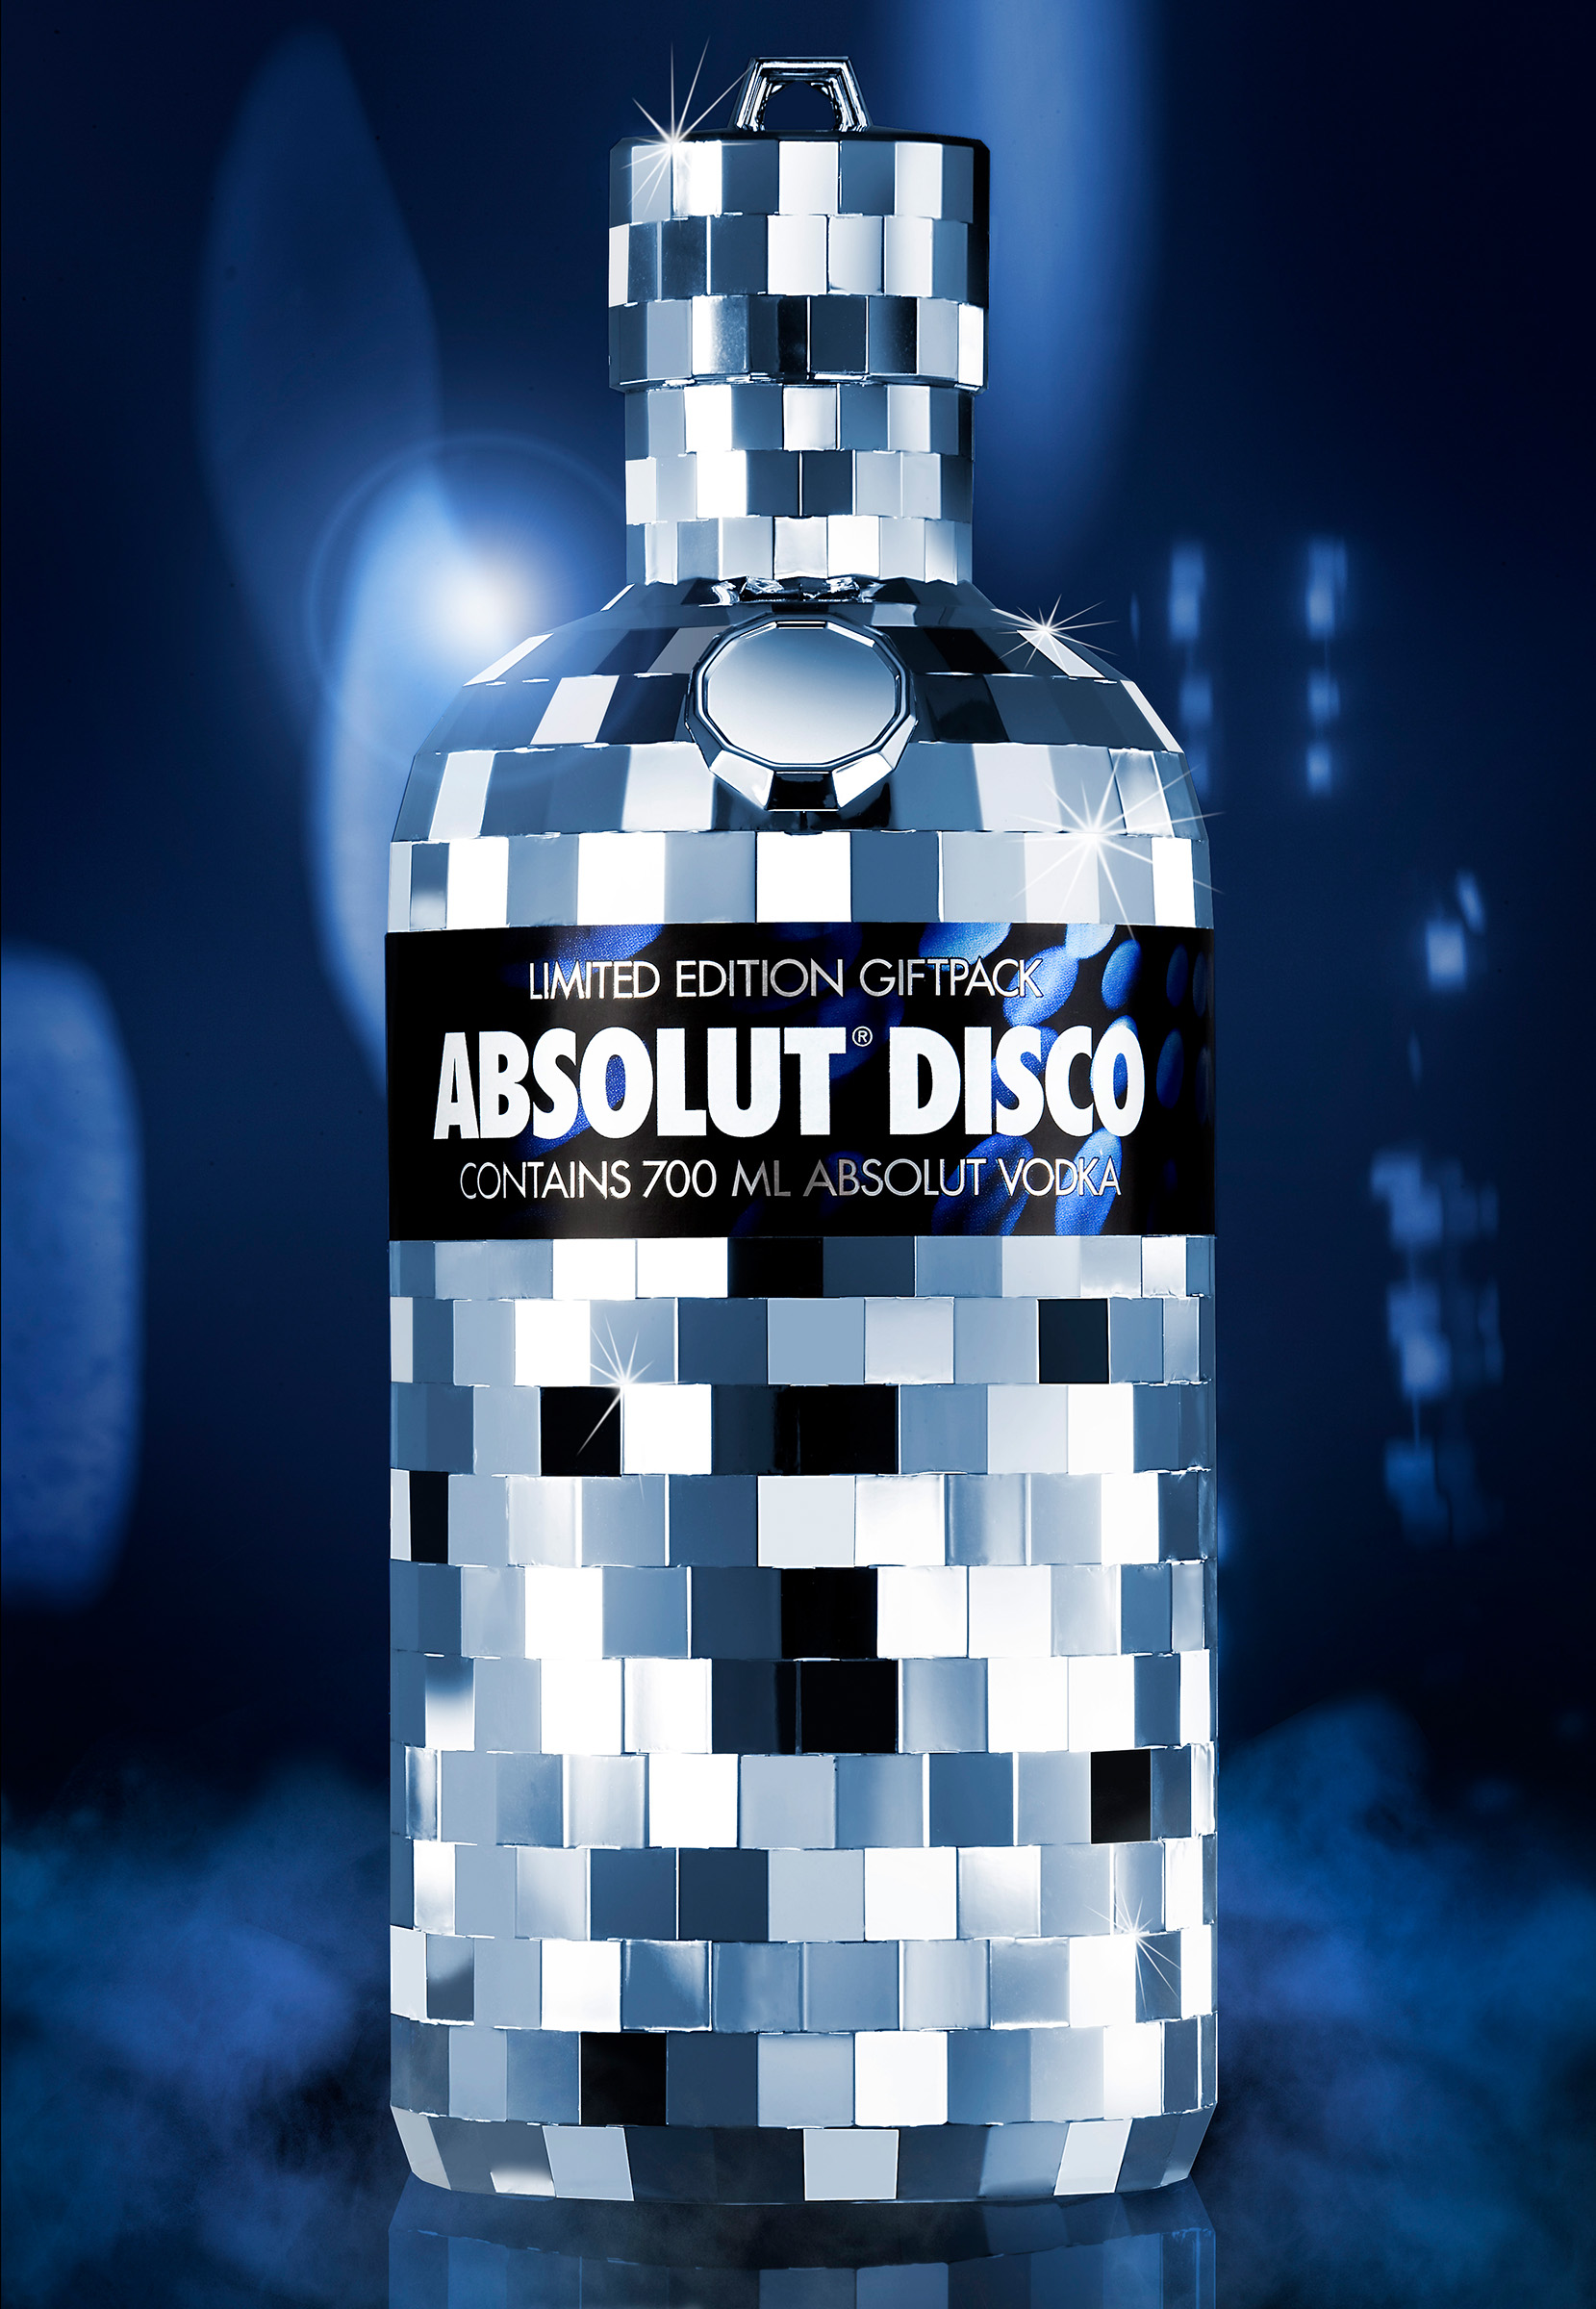 Absolut Disco Alcohol product photography